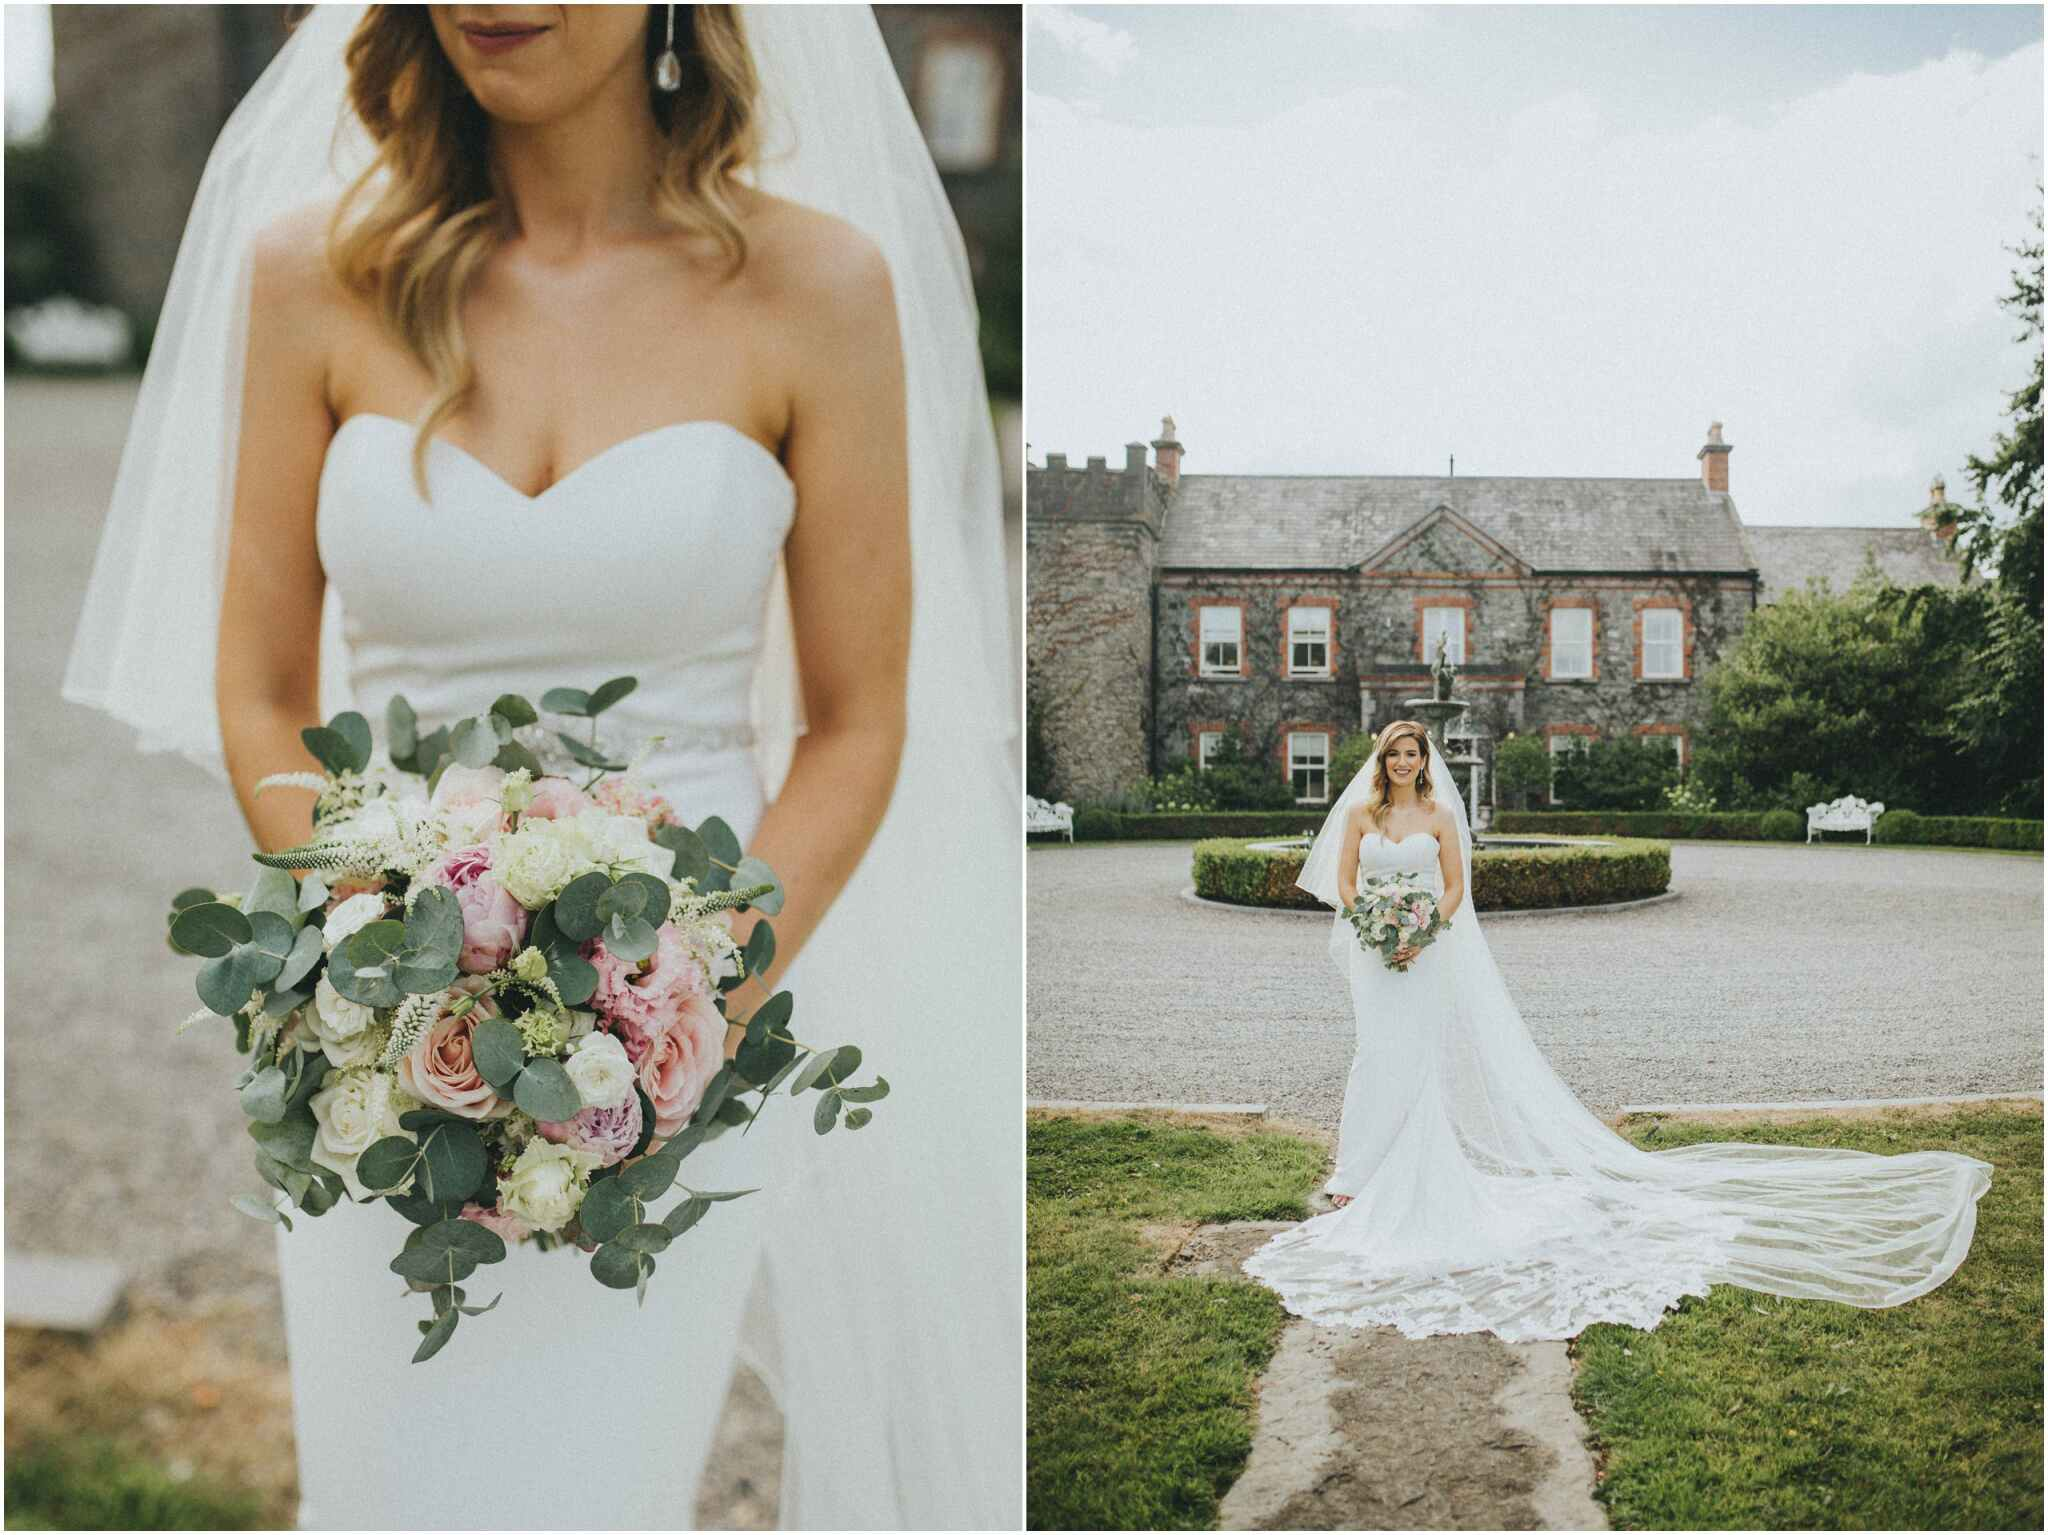 ballymagarvey village wedding 00102 - Fun and Relaxed wedding and elopement photography in Ireland, perfect for adventurous and outdoorsy couples